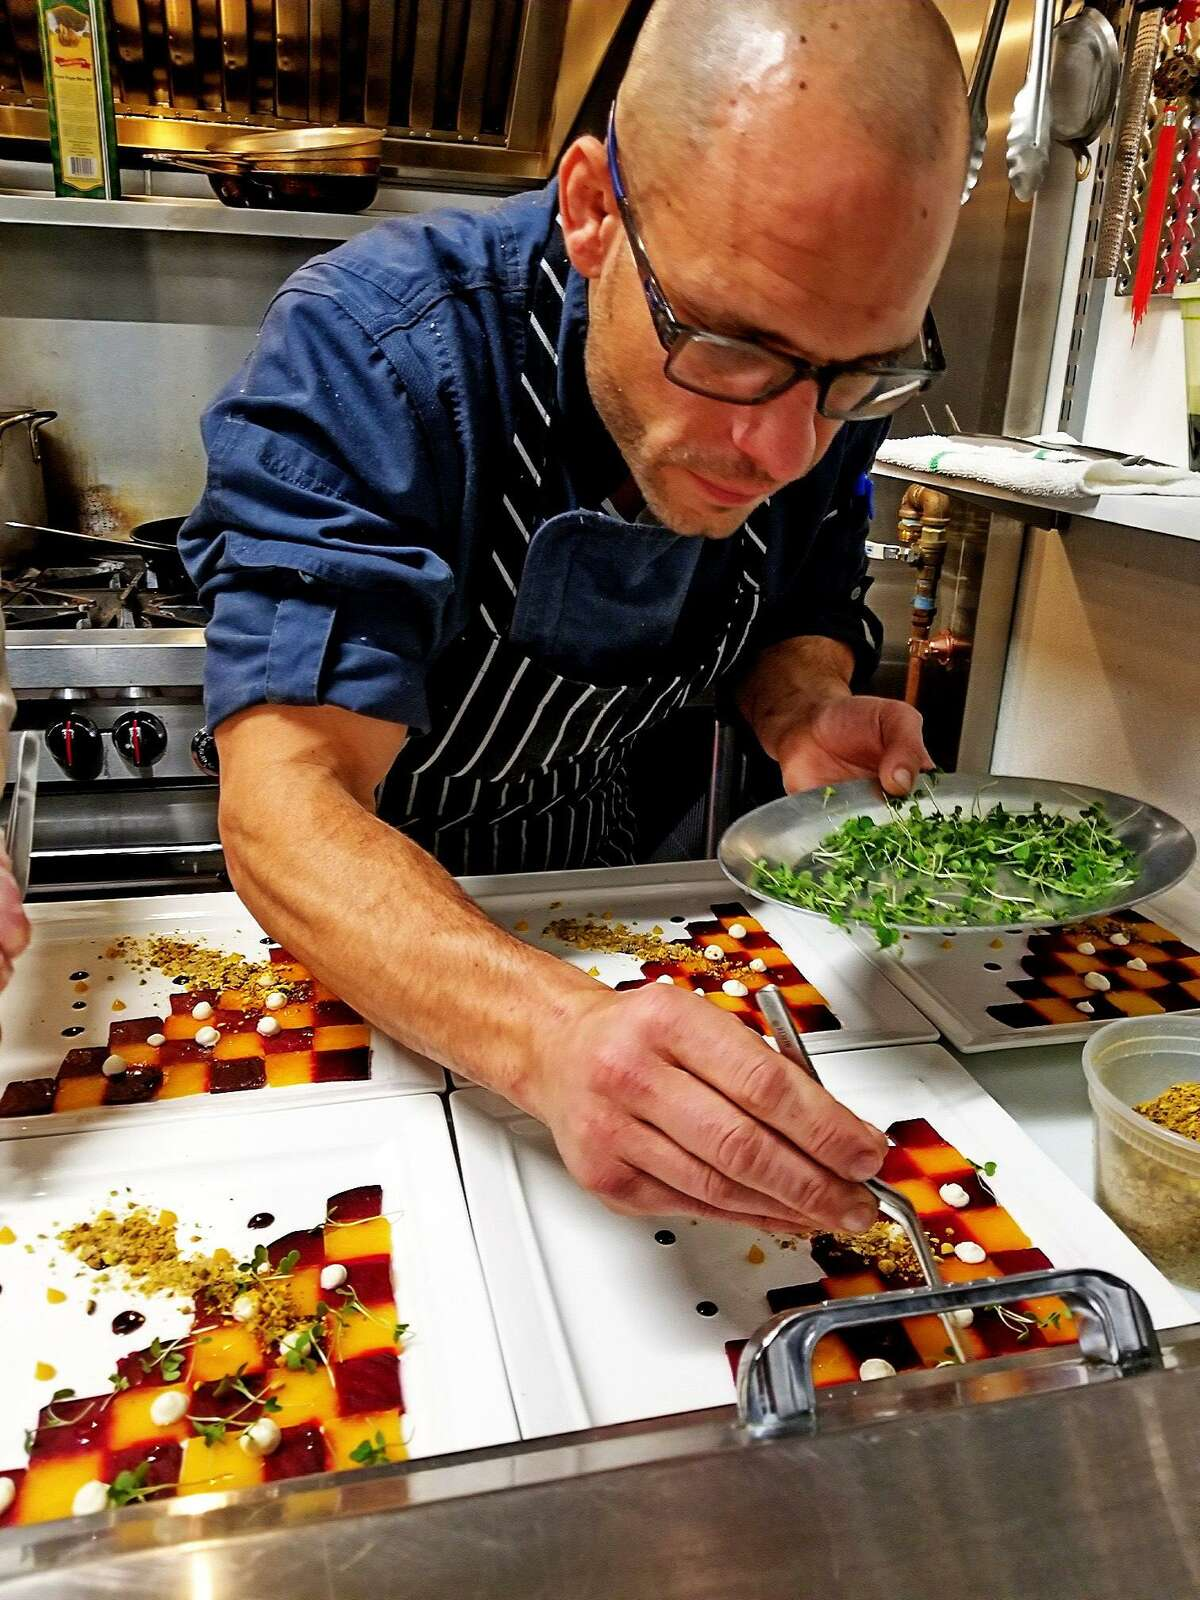 Chef/owner Carl Ciarcia Jr. carefully arranges a plate at Bread & Water restaurant at 51 Warwick St. in Middletown. He closed the eatery mid-April, after being unable to fully recover from the April 2017 blaze that destroyed much of the interior.